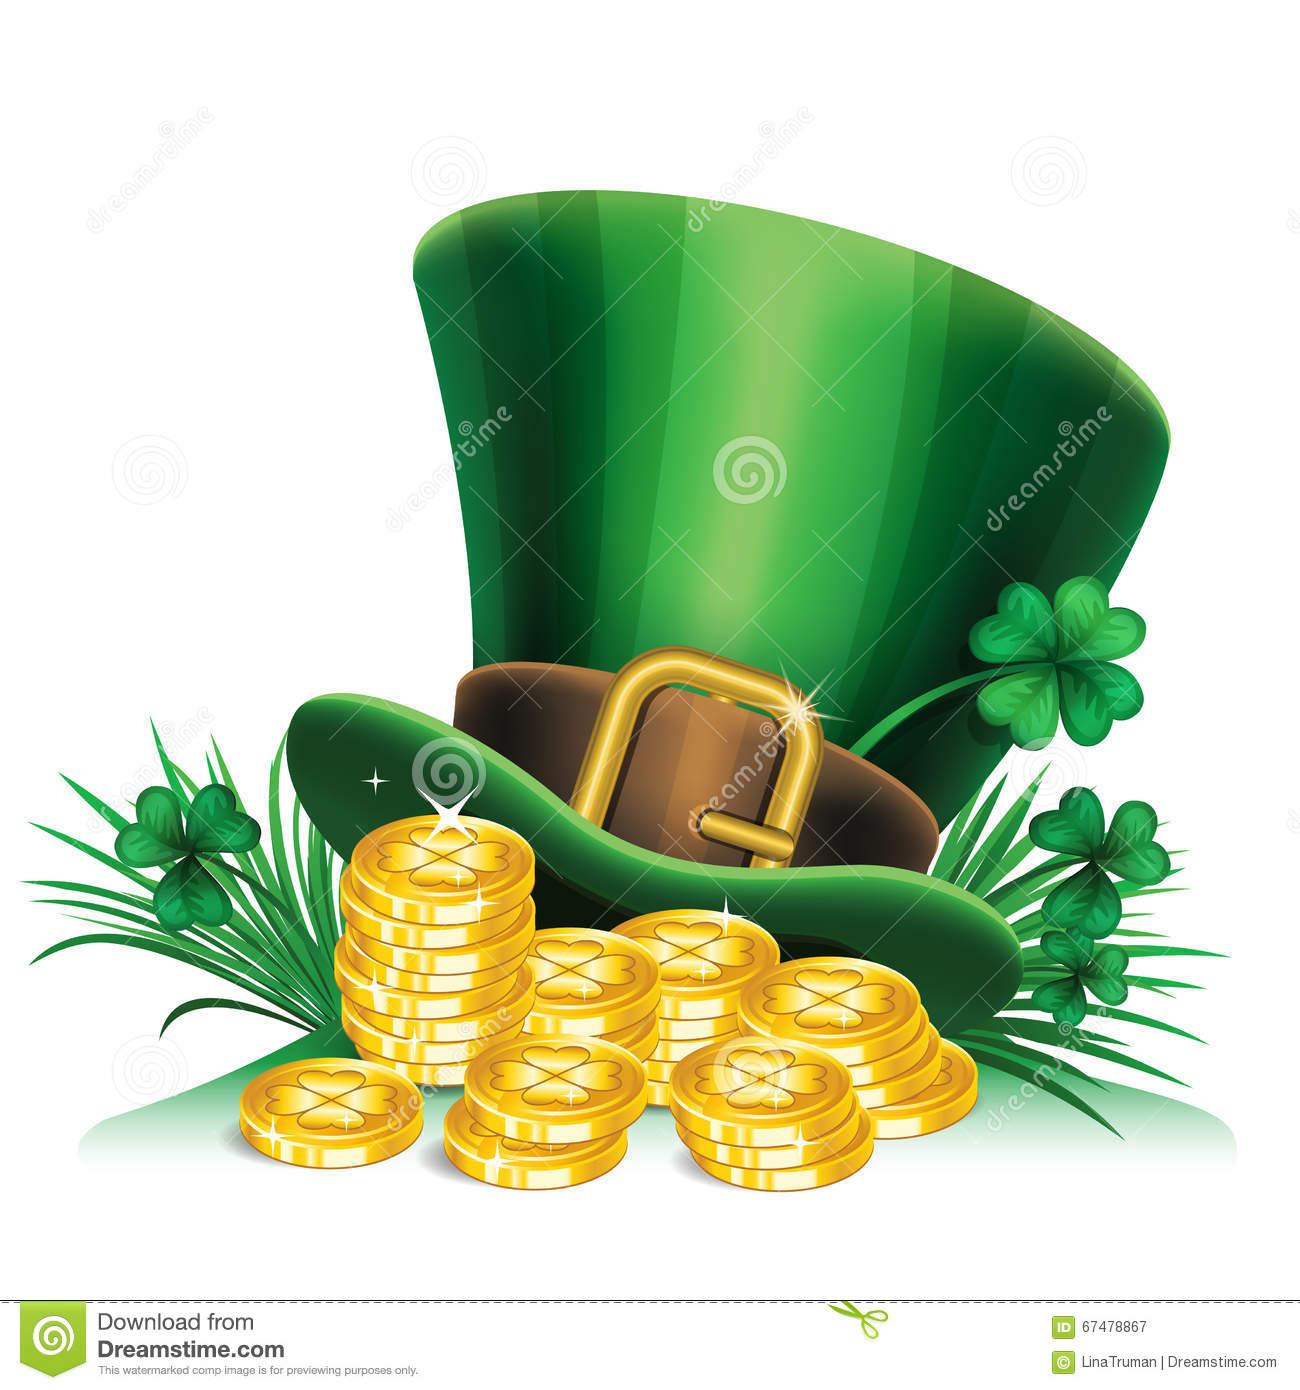 St Patricks Day Green Leprechaun Hat With Clover And Gold Coins StPatricks Symbol Background Vector Illustration